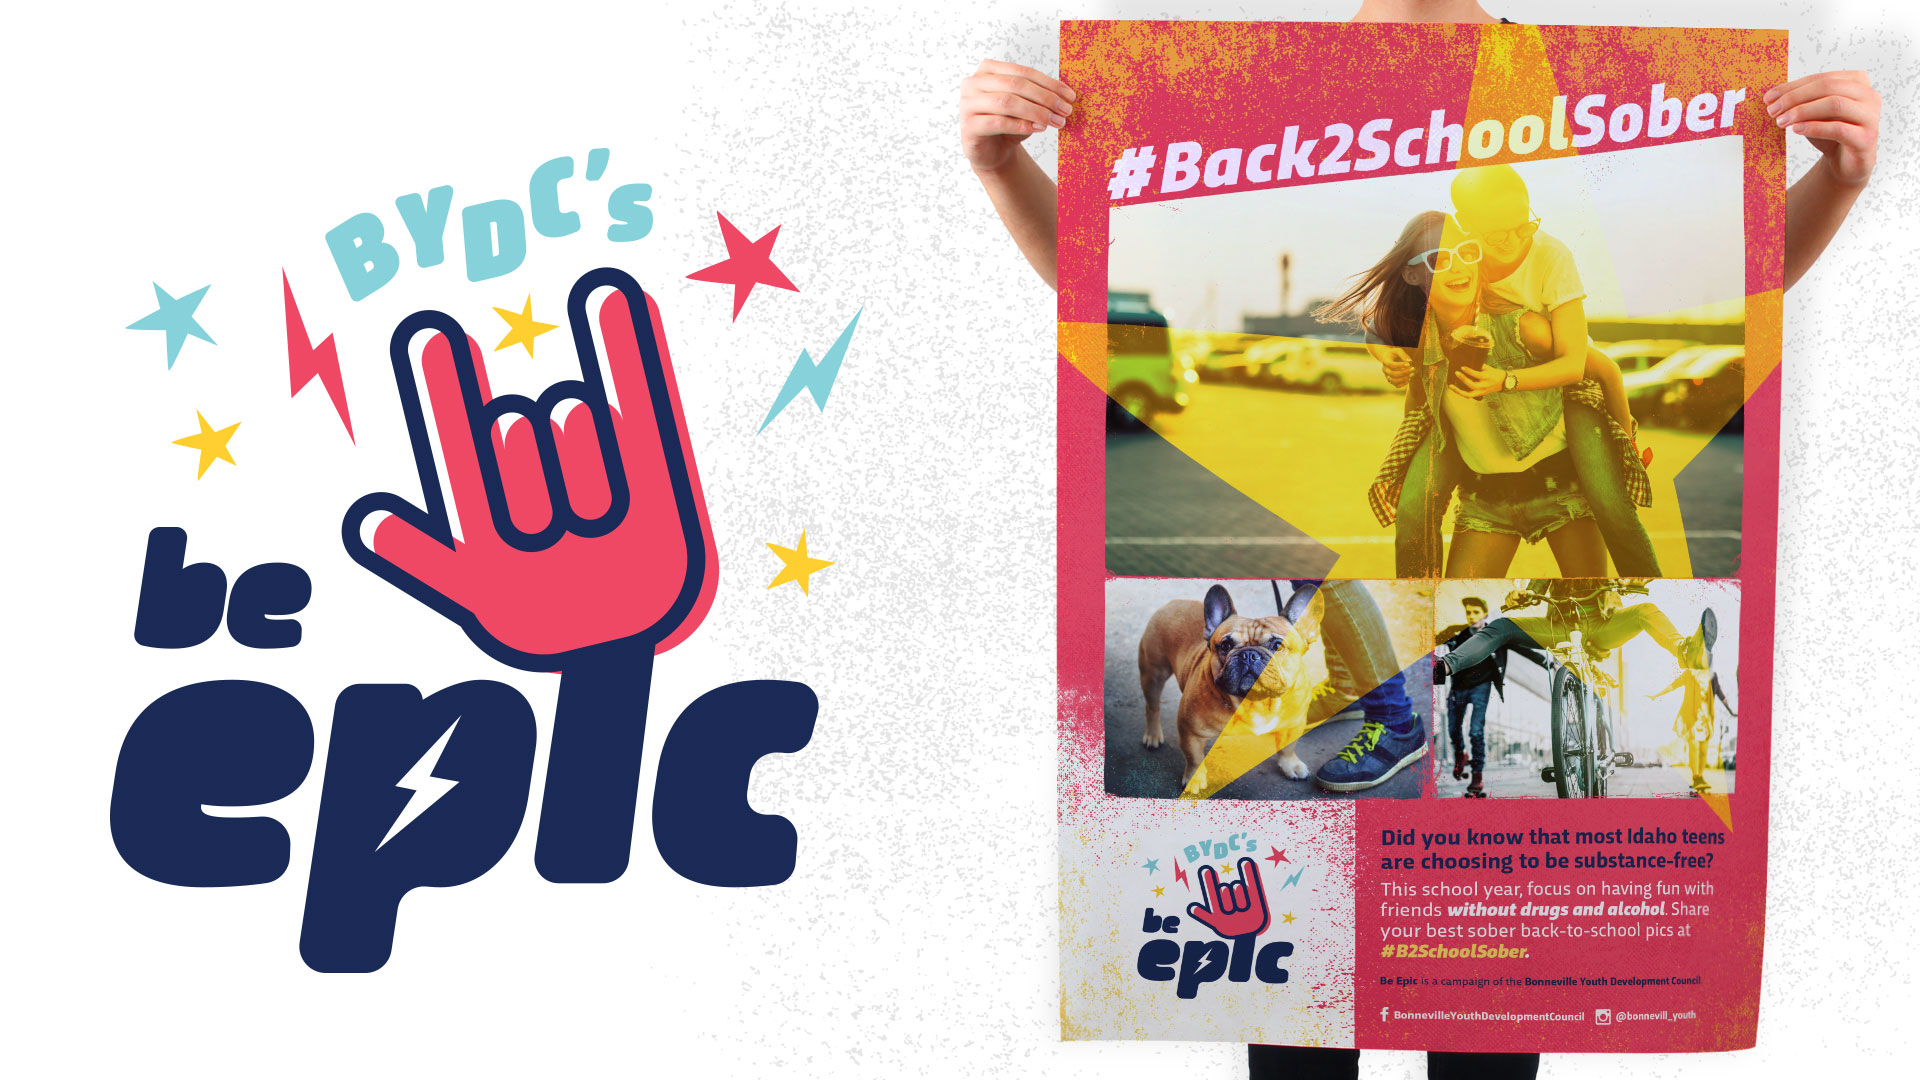 BYDC Be Epic campaign logo